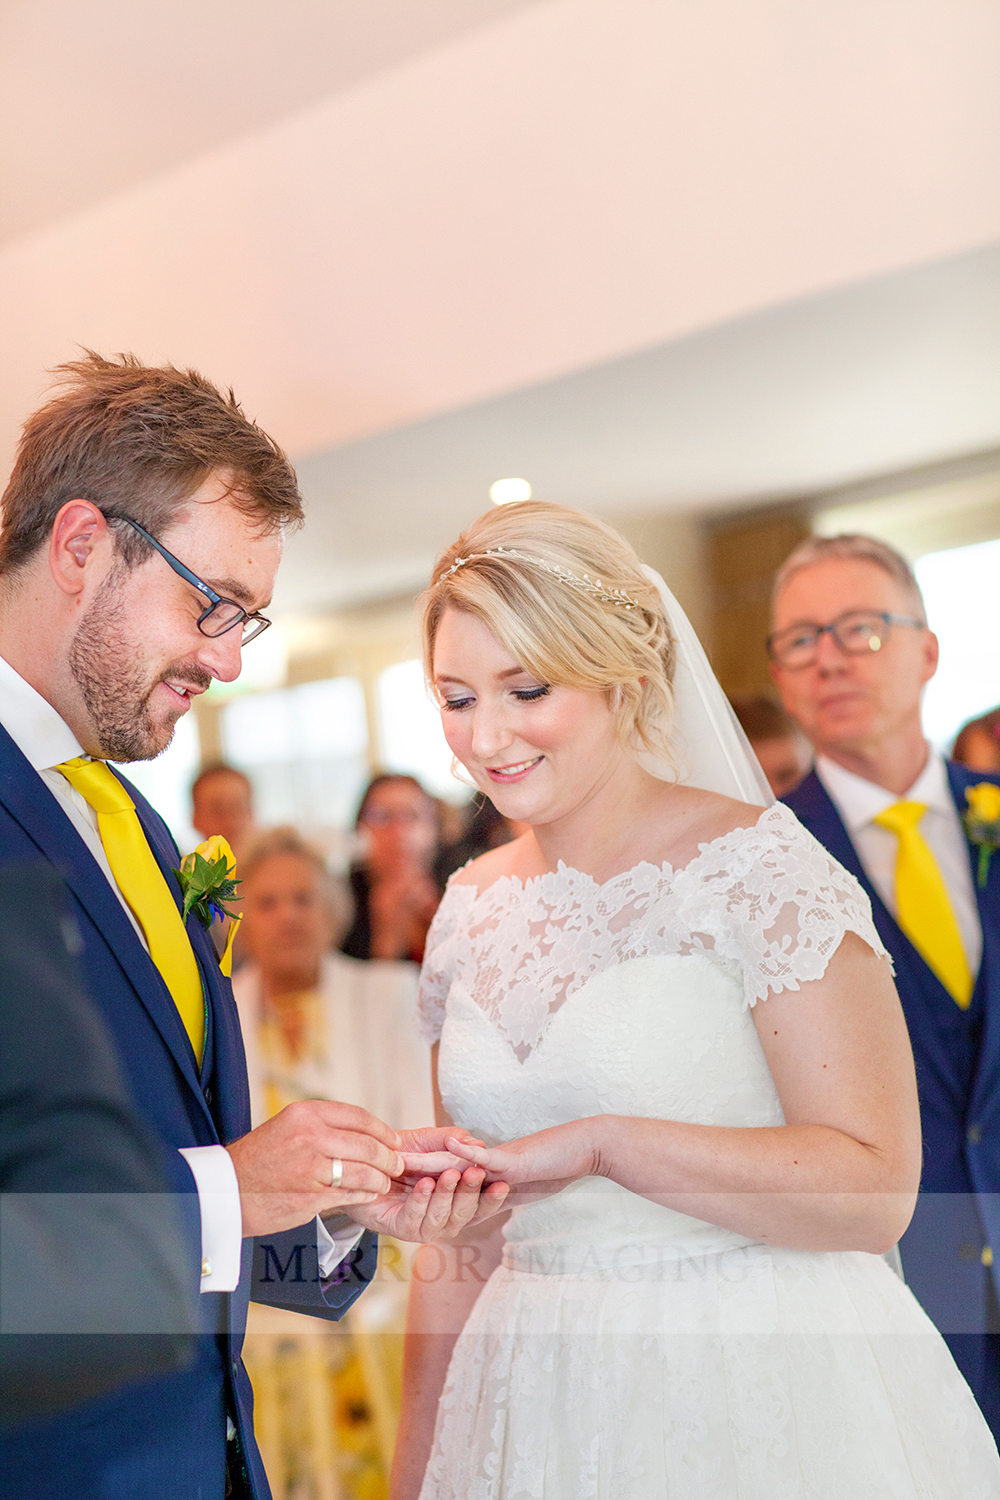 notts wedding photographer 25.jpg